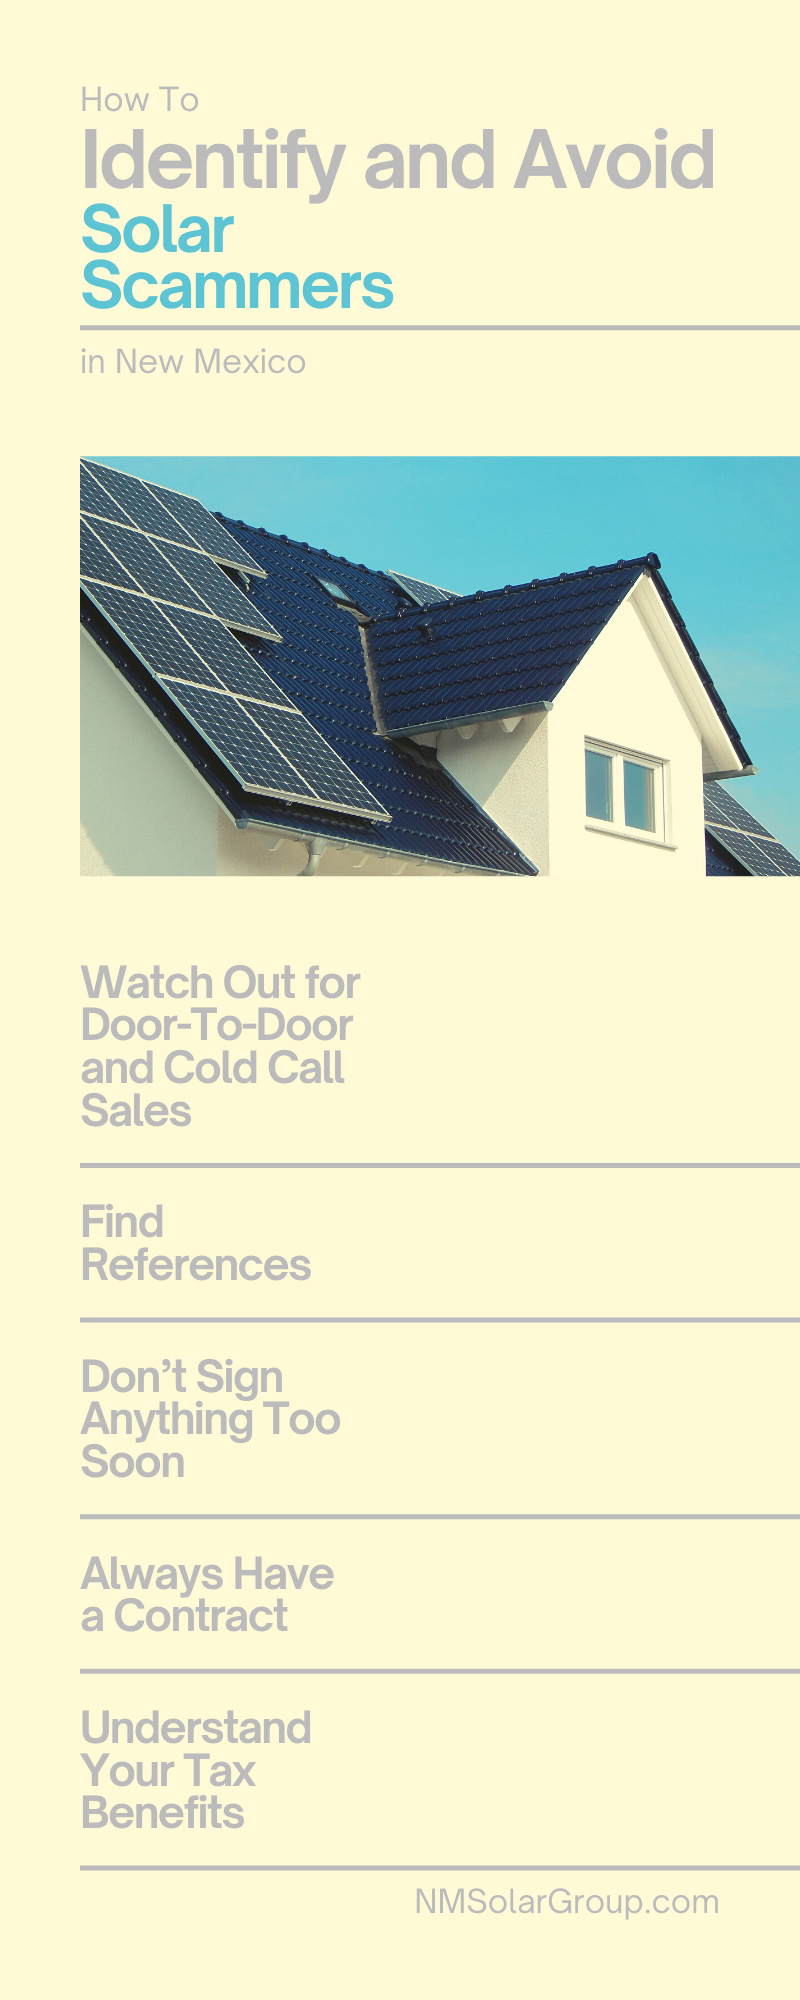 How To Identify and Avoid Solar Scammers in New Mexico